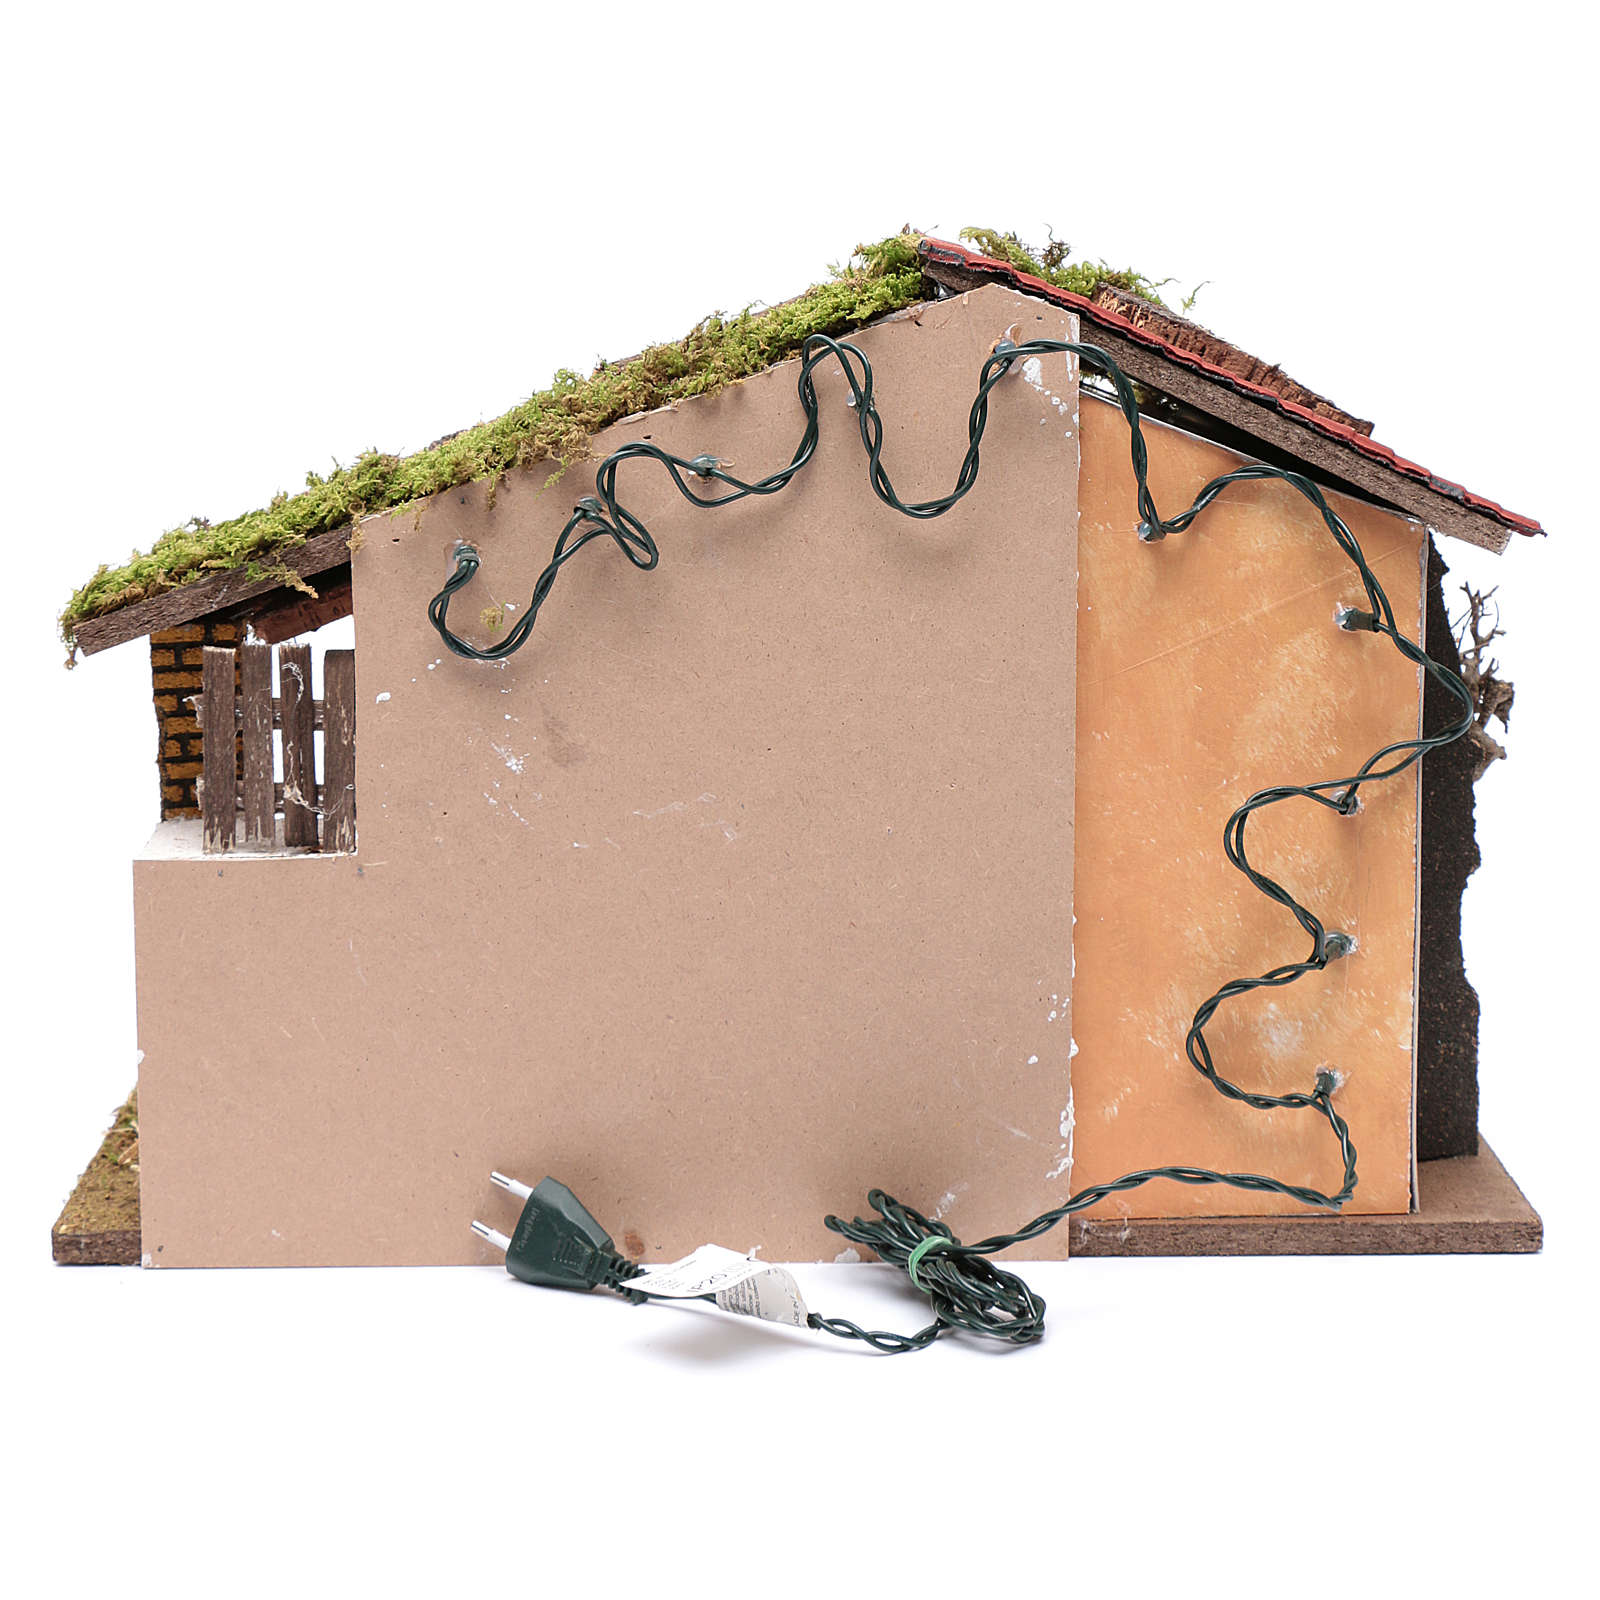 Nativity scene setting house with red roof and barn 35x50x25 cm 4